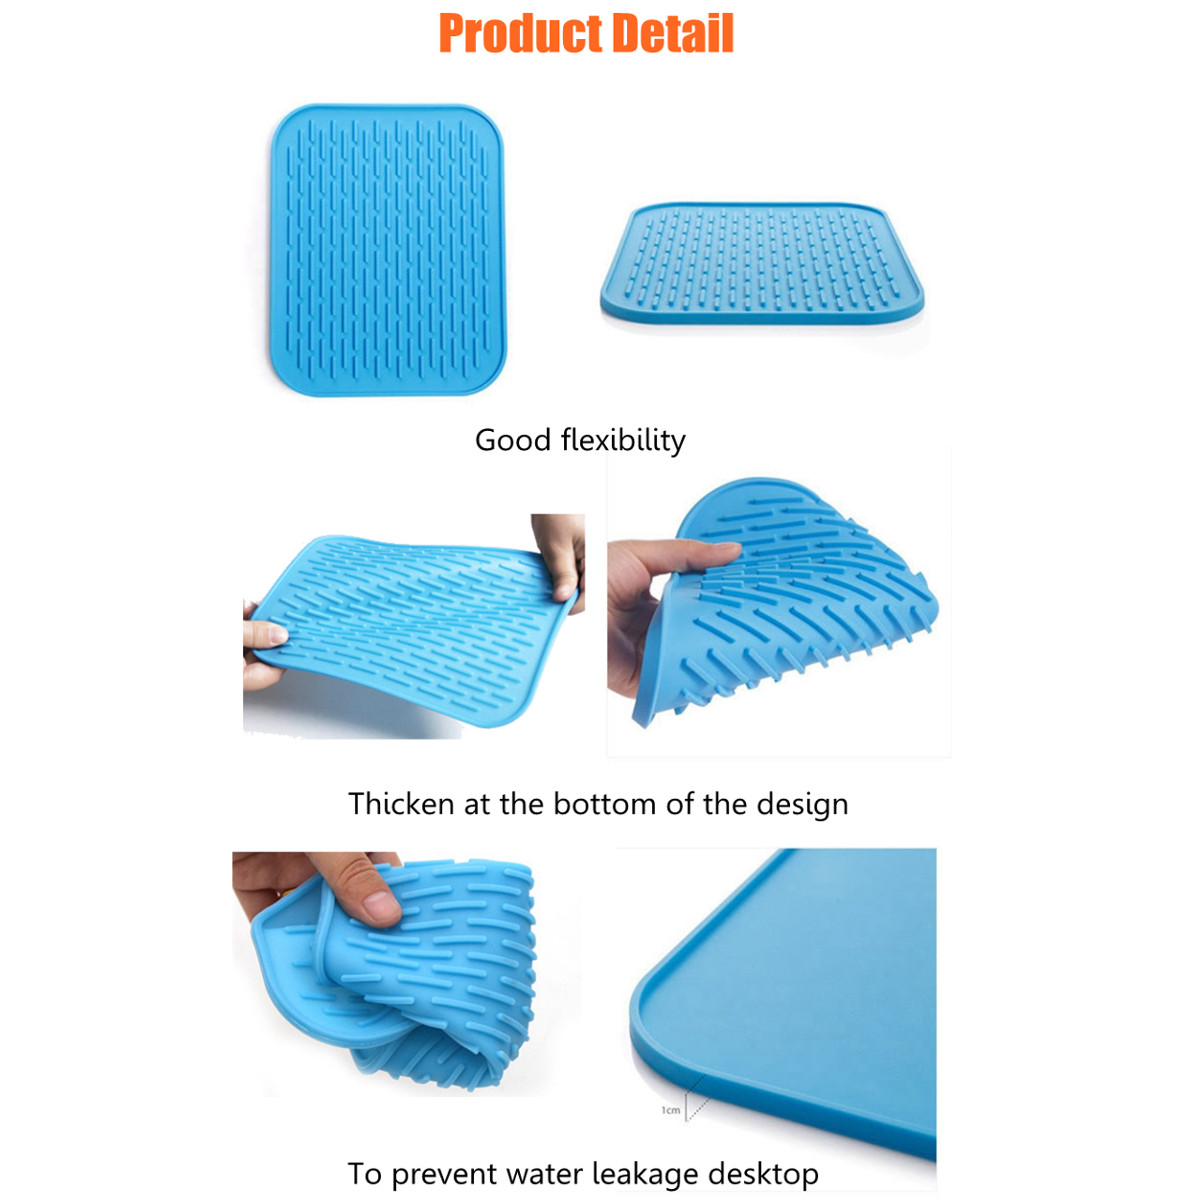 Silicone Non-slip Mat Heat Resistant Table Placemat Kitchen Sink Dishes Cup Dry Coaster